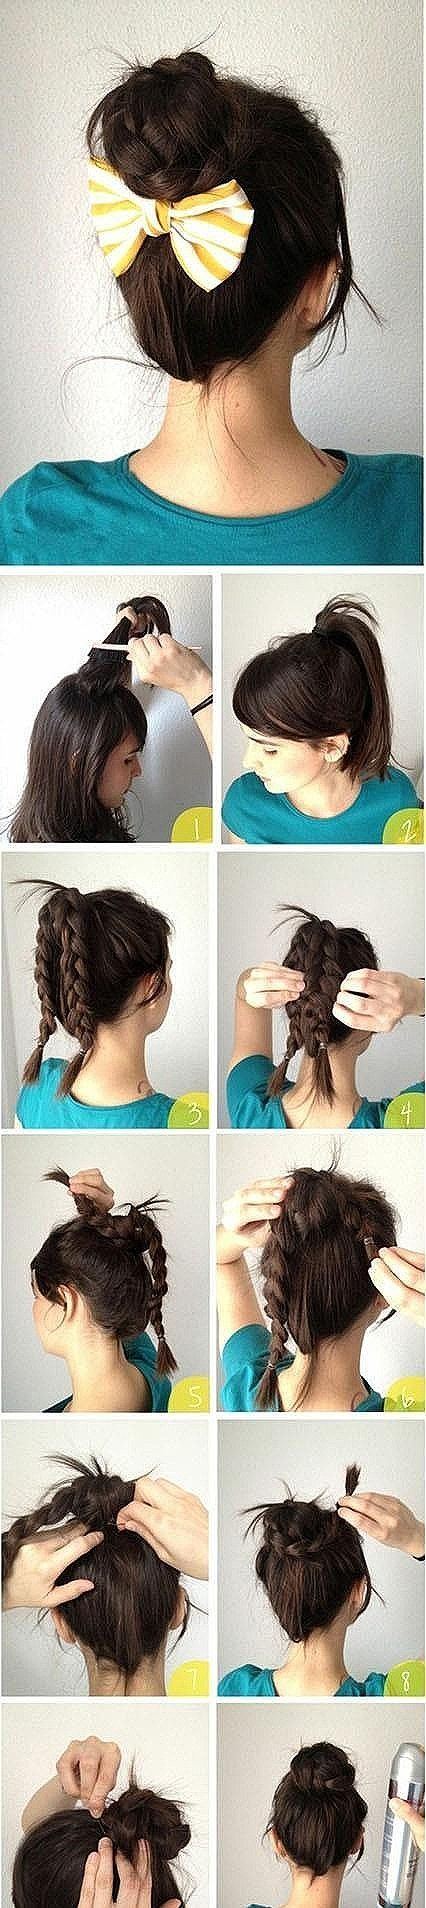 best hairstyles images on pinterest long hair make up looks